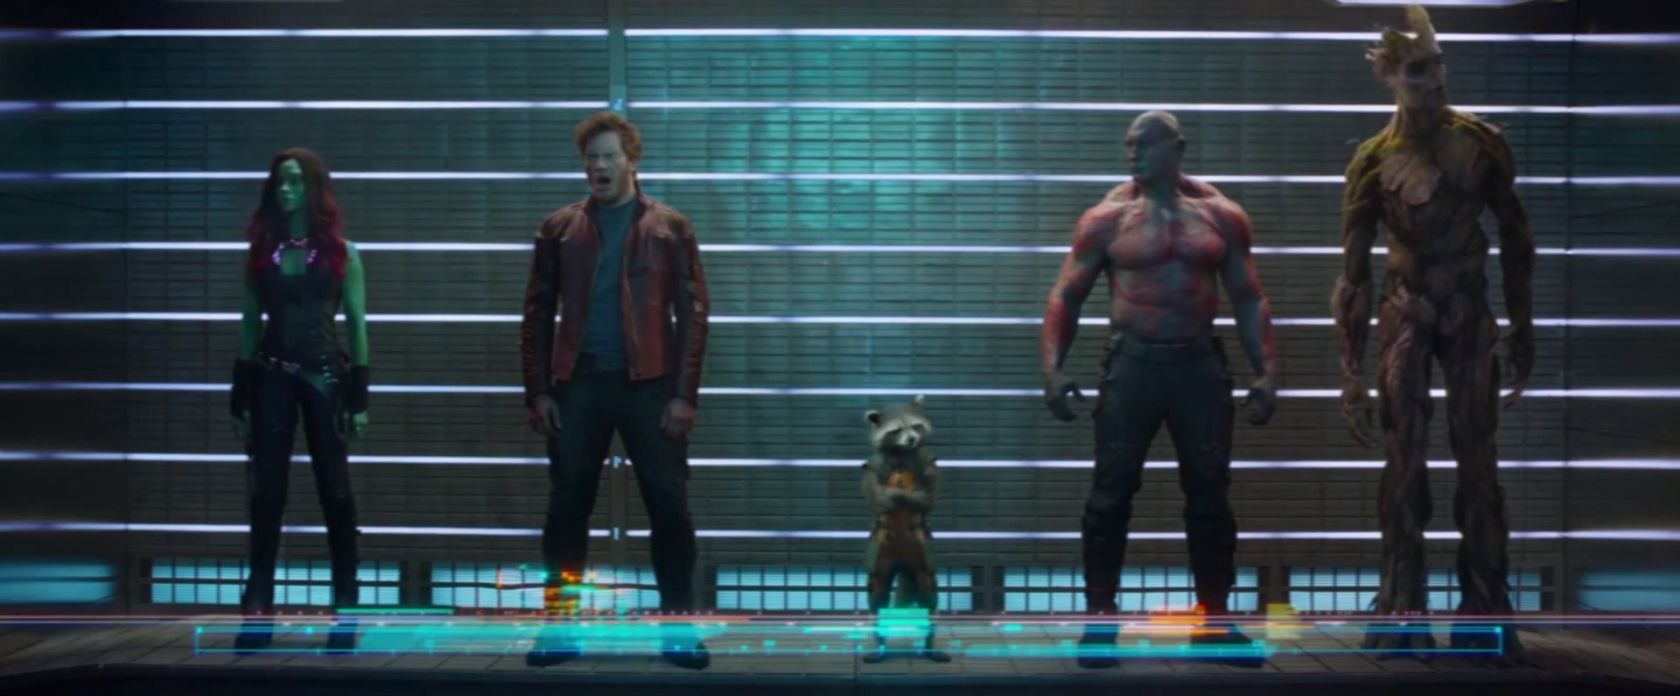 Guardians of the Galaxy (Trailer #1) Review | Tim's Film ...